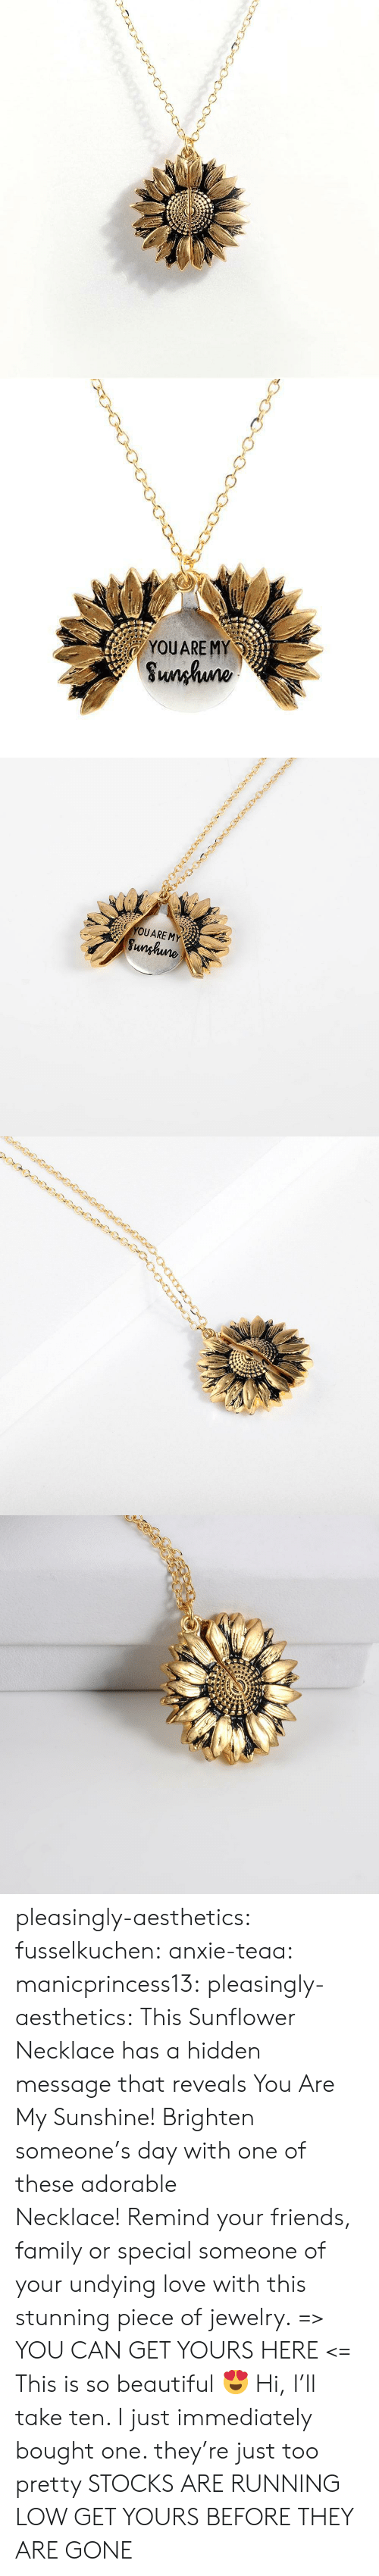 Beautiful, Family, and Friends: YOUARE MY  Sunhuno   YOUARE MY  Sunghune pleasingly-aesthetics:  fusselkuchen: anxie-teaa:   manicprincess13:   pleasingly-aesthetics:  This Sunflower Necklace has a hidden message that reveals You Are My Sunshine! Brighten someone's day with one of these adorable Necklace! Remind your friends, family or special someone of your undying love with this stunning piece of jewelry. => YOU CAN GET YOURS HERE <=   This is so beautiful ?    Hi, I'll take ten.    I just immediately bought one. they're just too pretty   STOCKS ARE RUNNING LOW GET YOURS BEFORE THEY ARE GONE